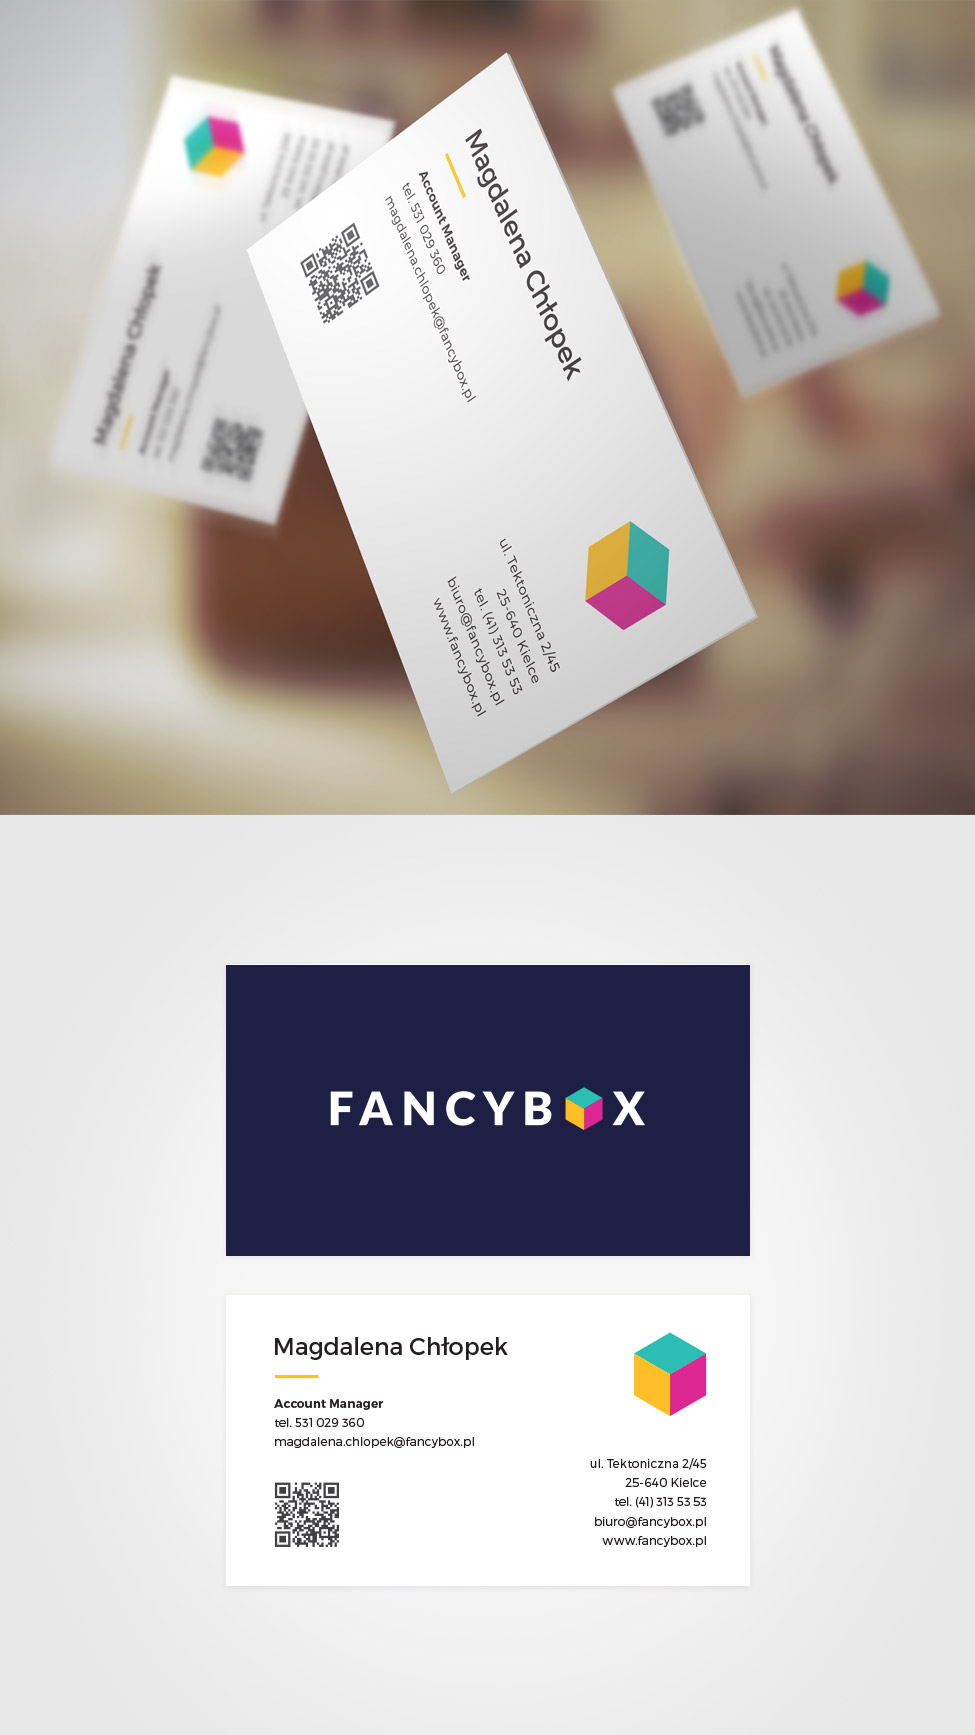 Business card fancybox.pl